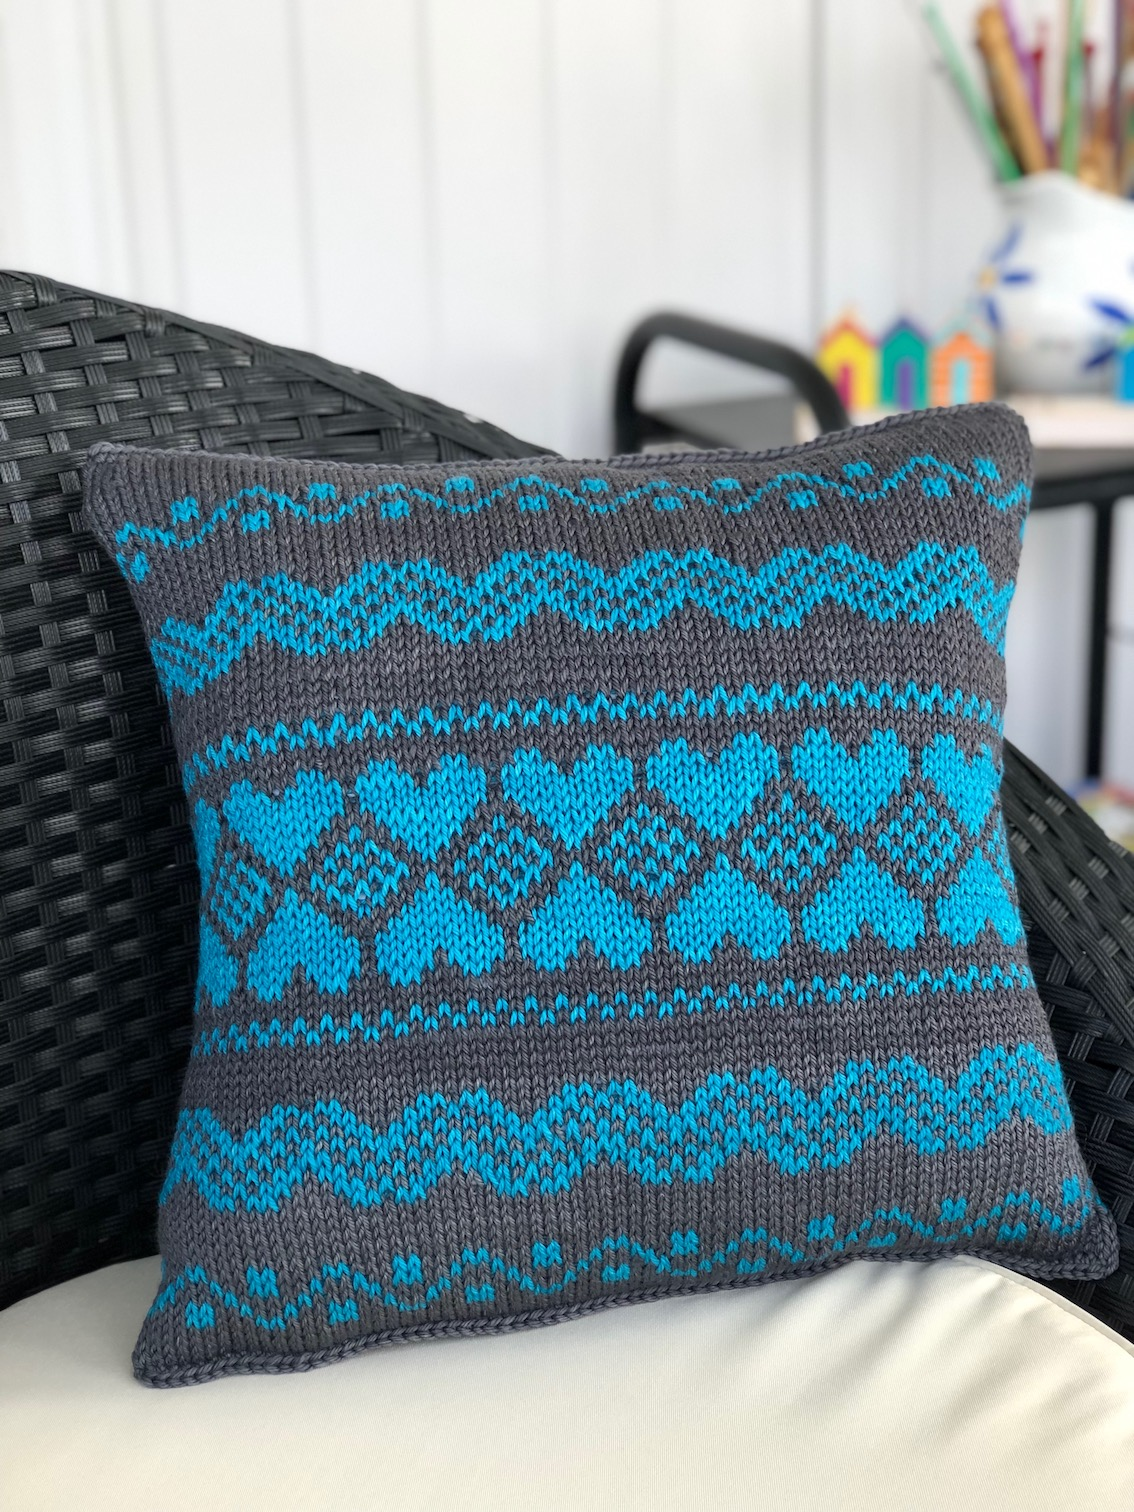 Mutti's Cushion